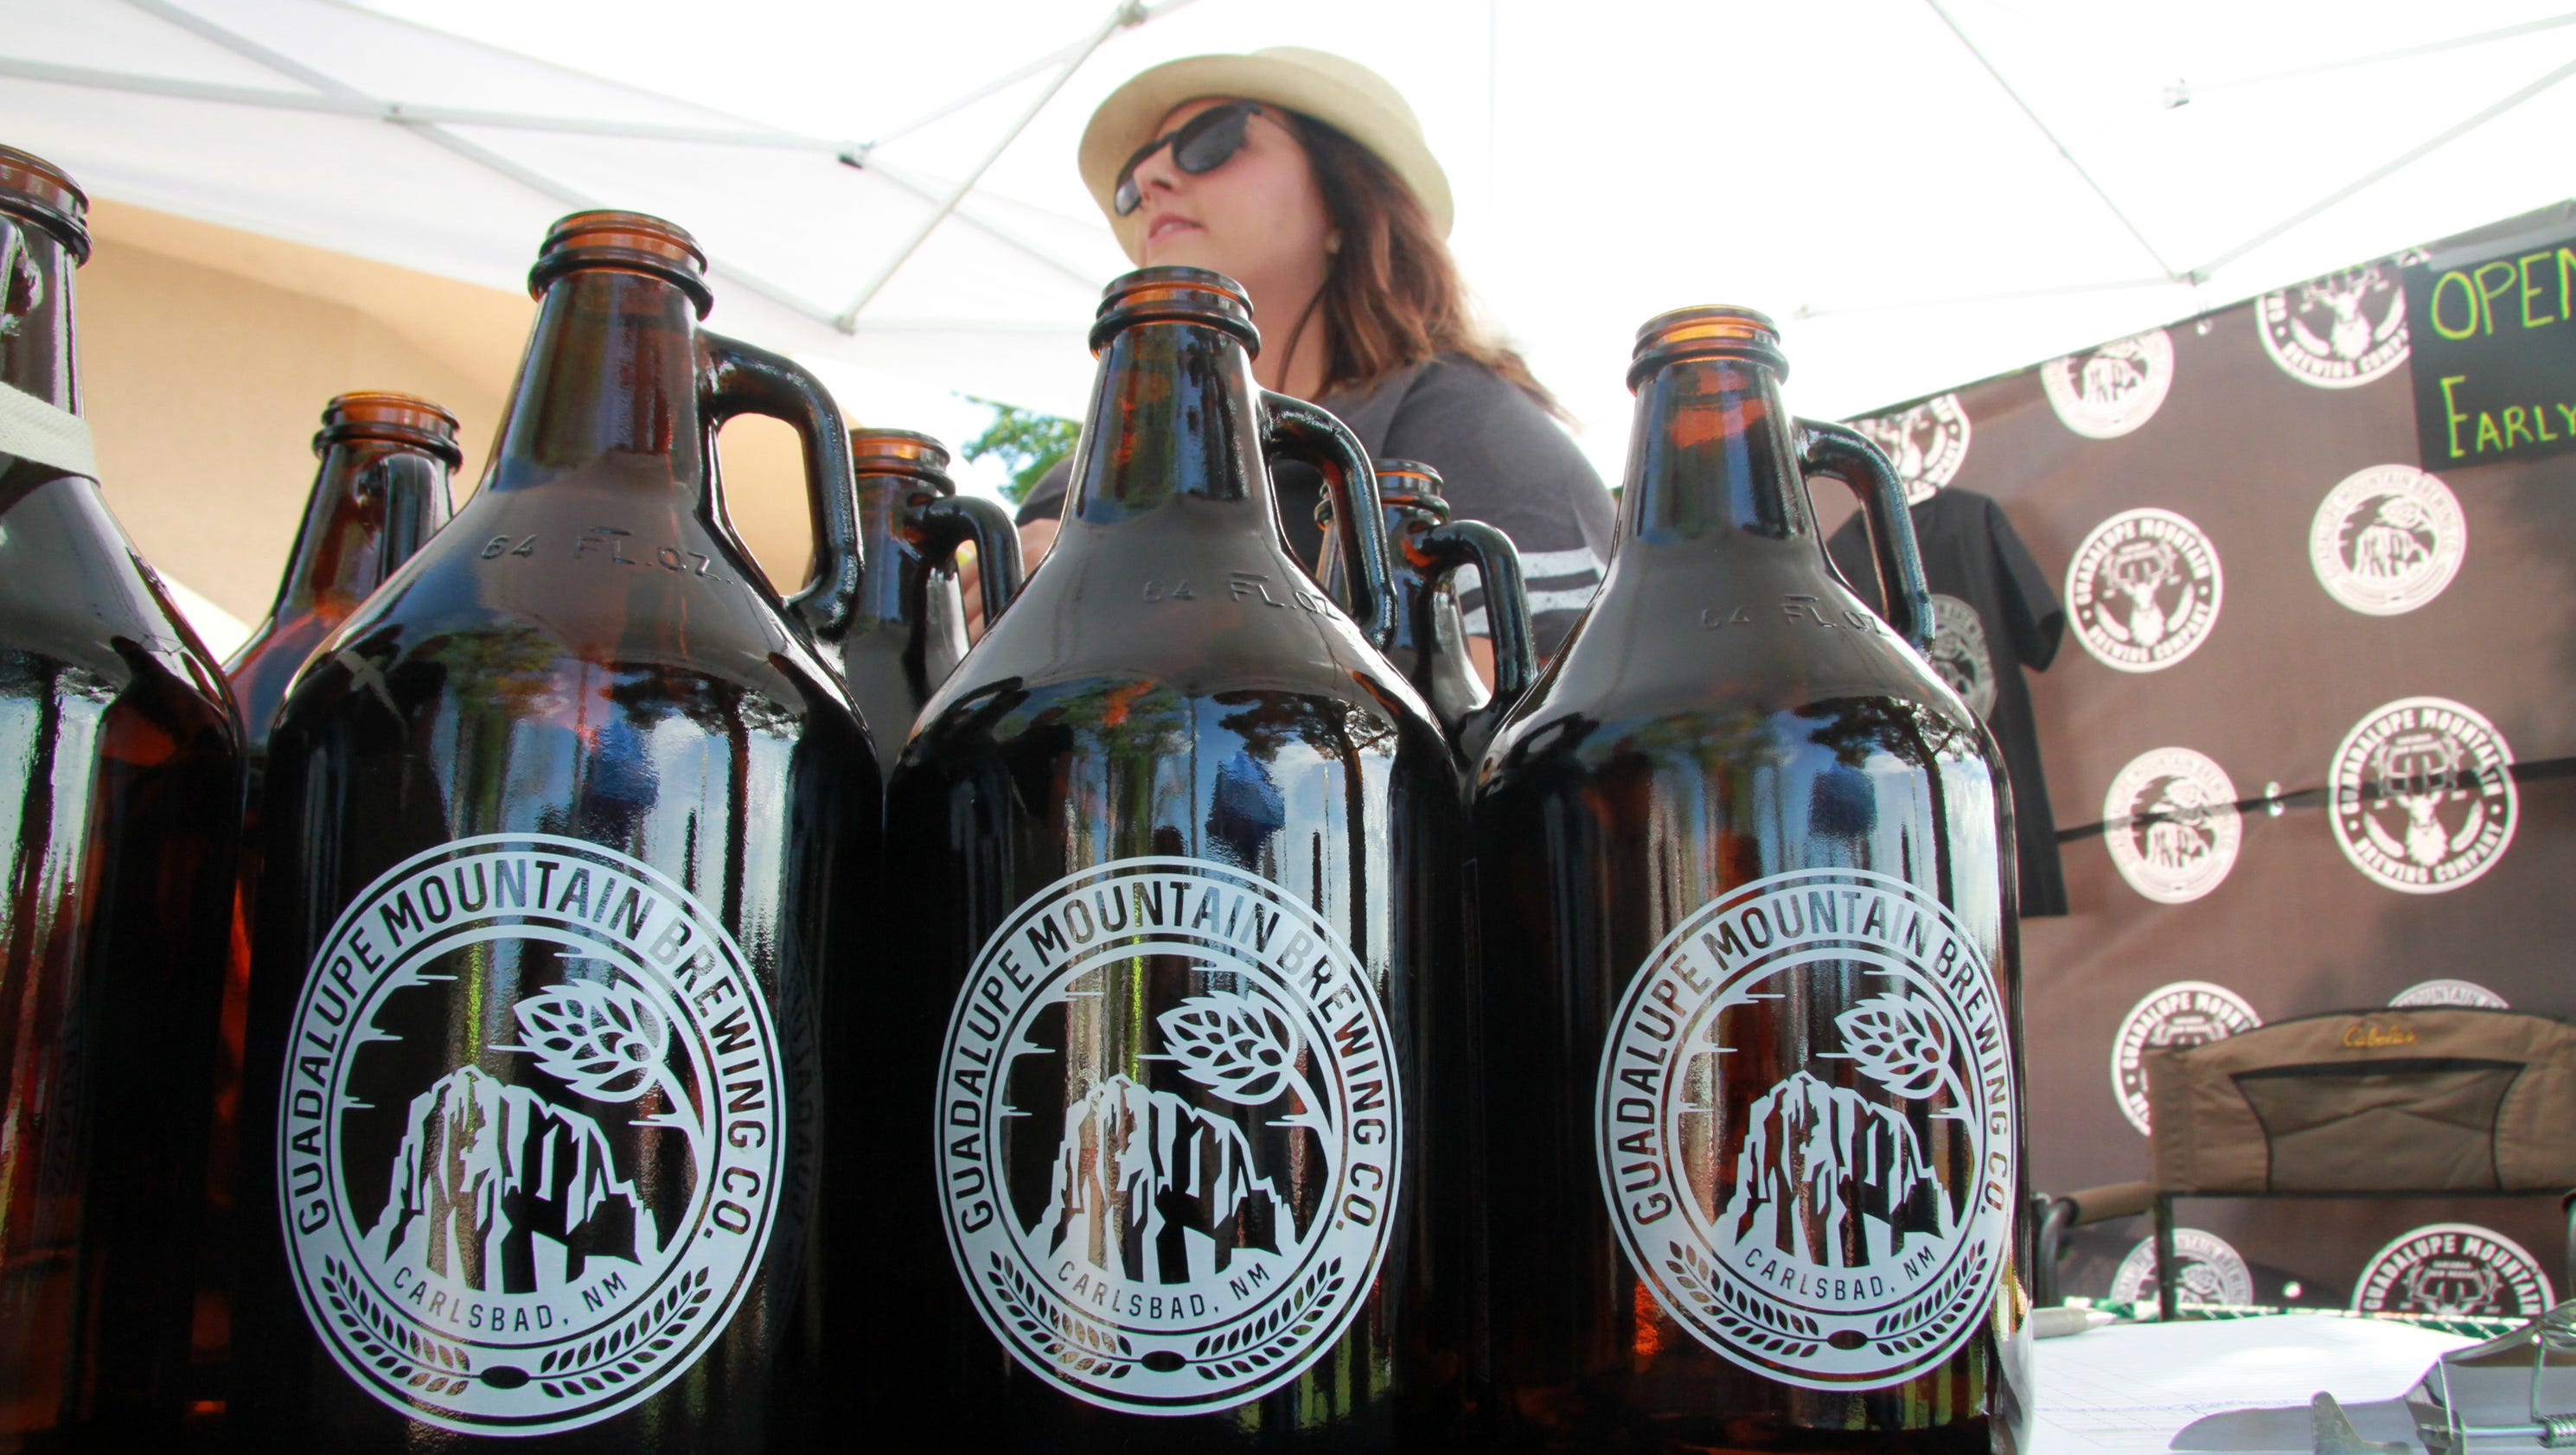 Microbrew And Craft Beer Festival